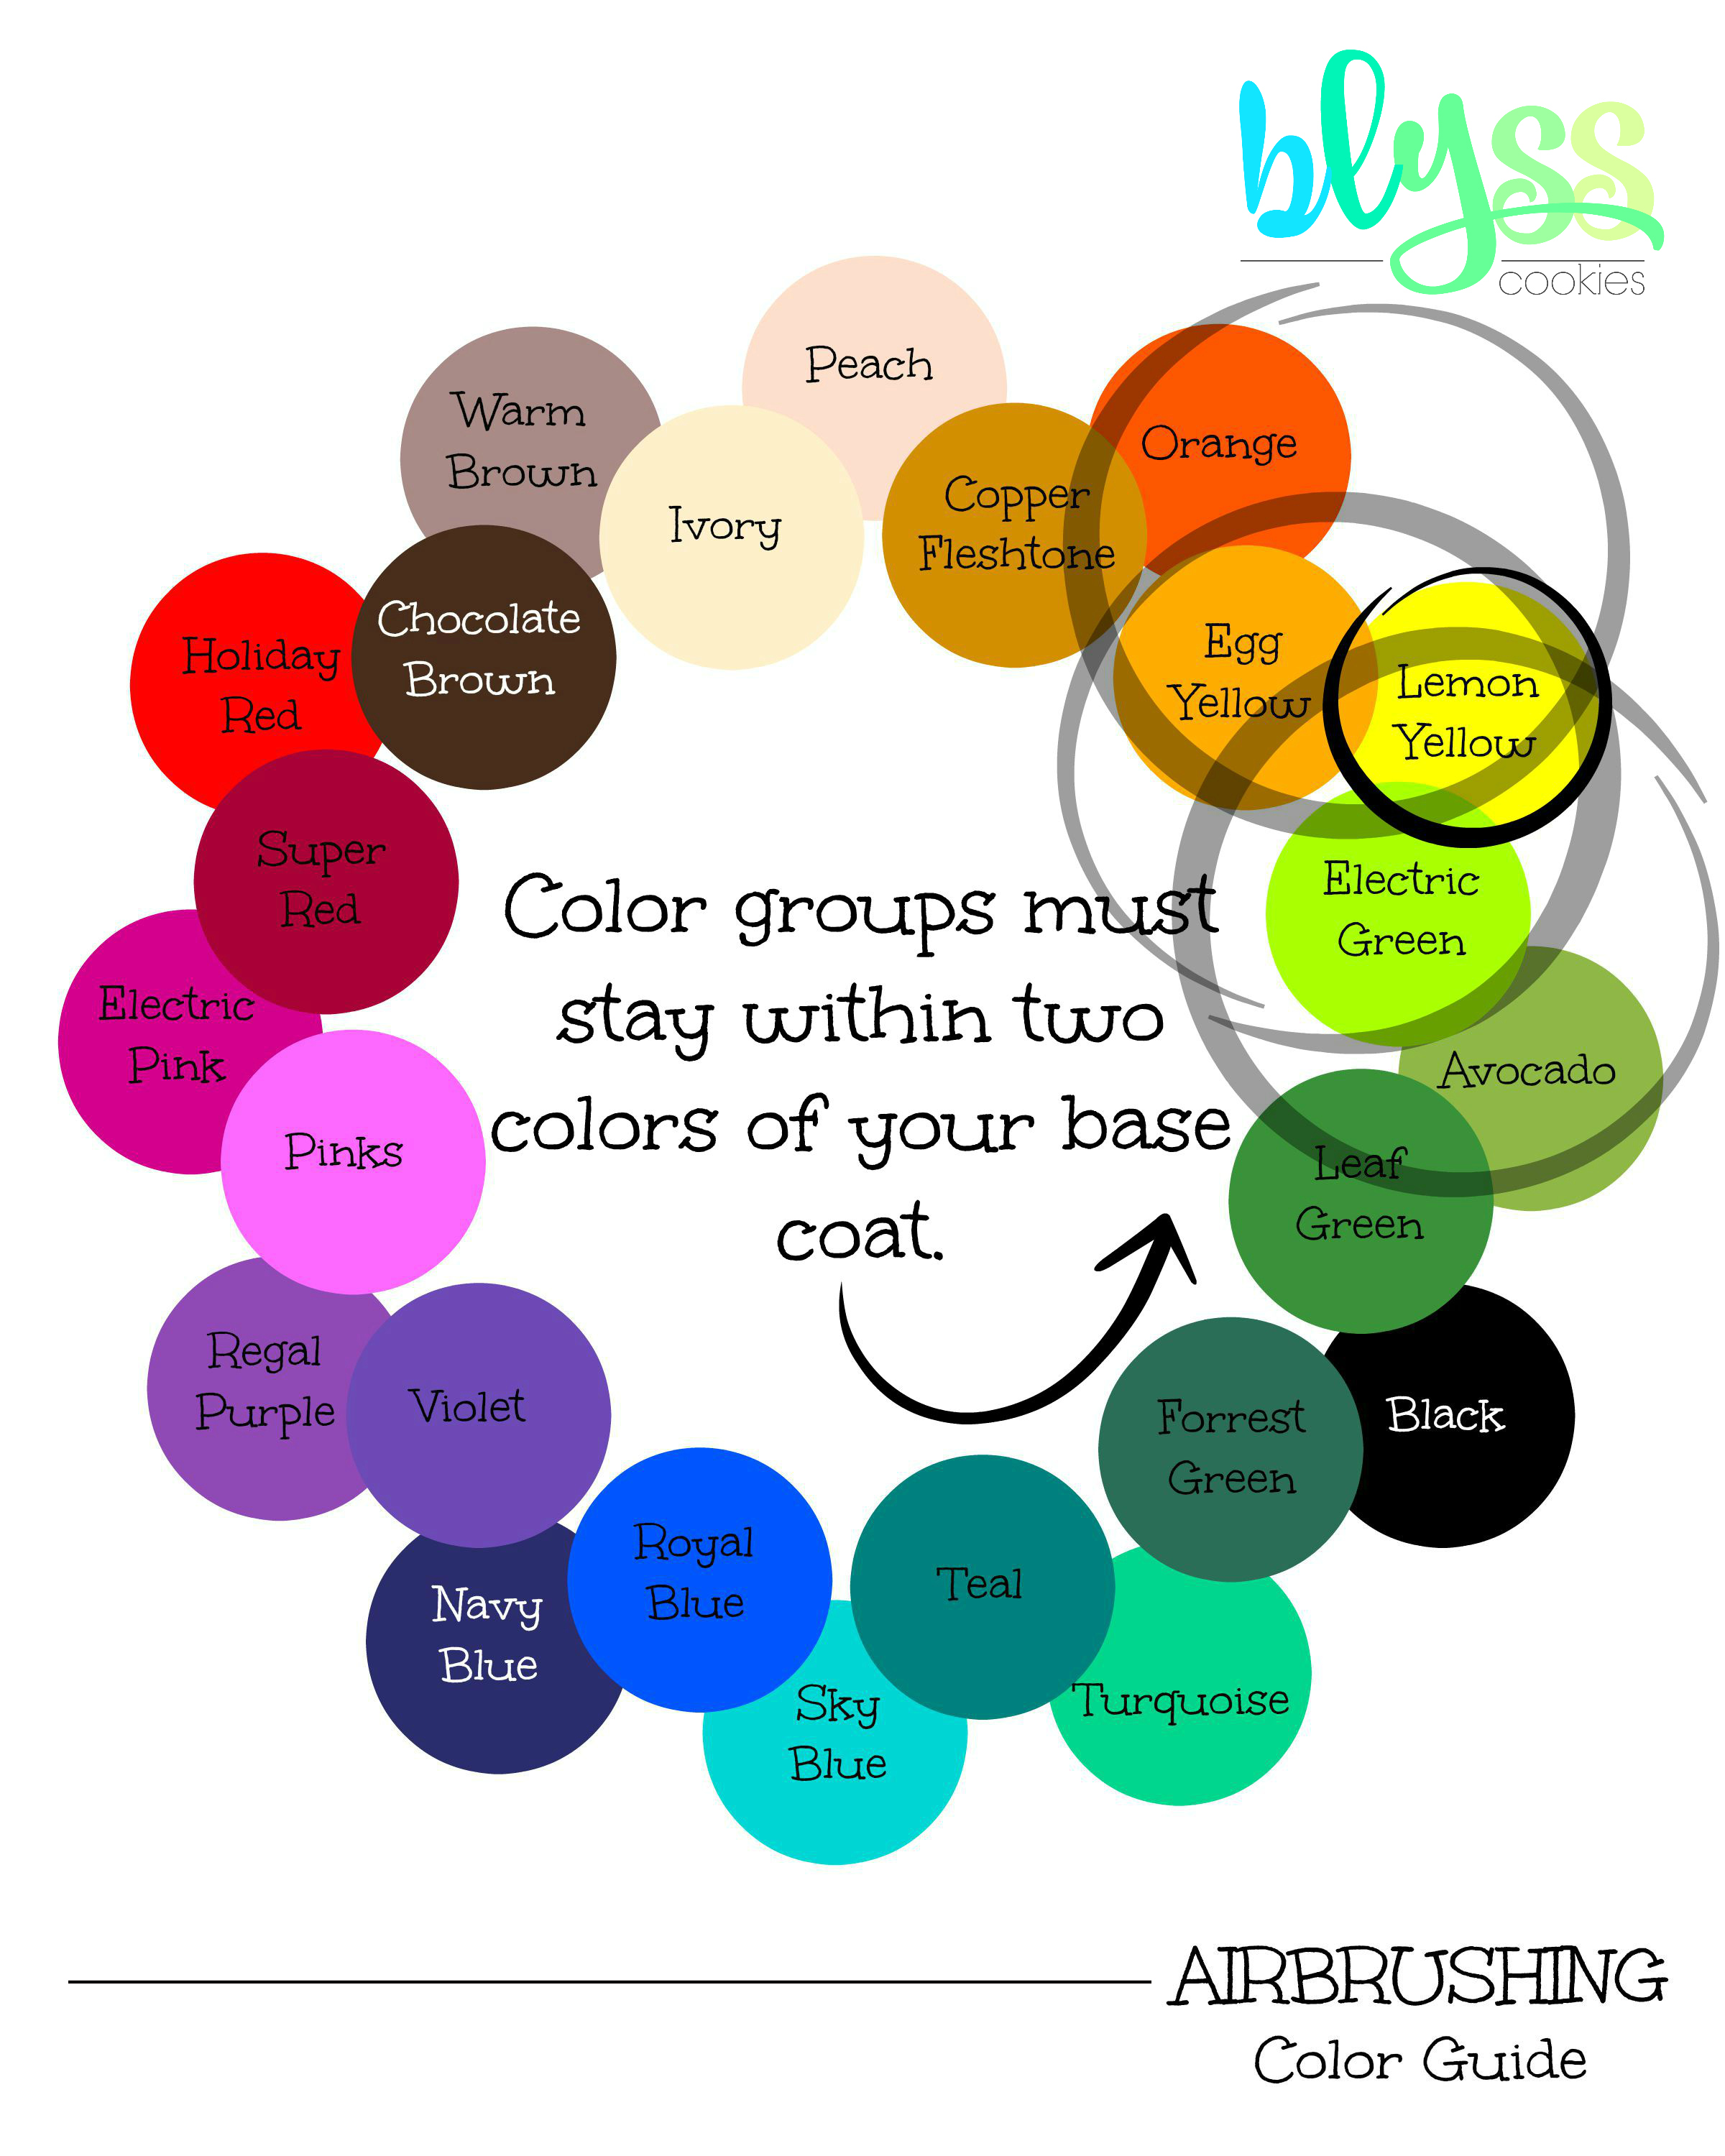 Airbrushing Color Guide3.jpg